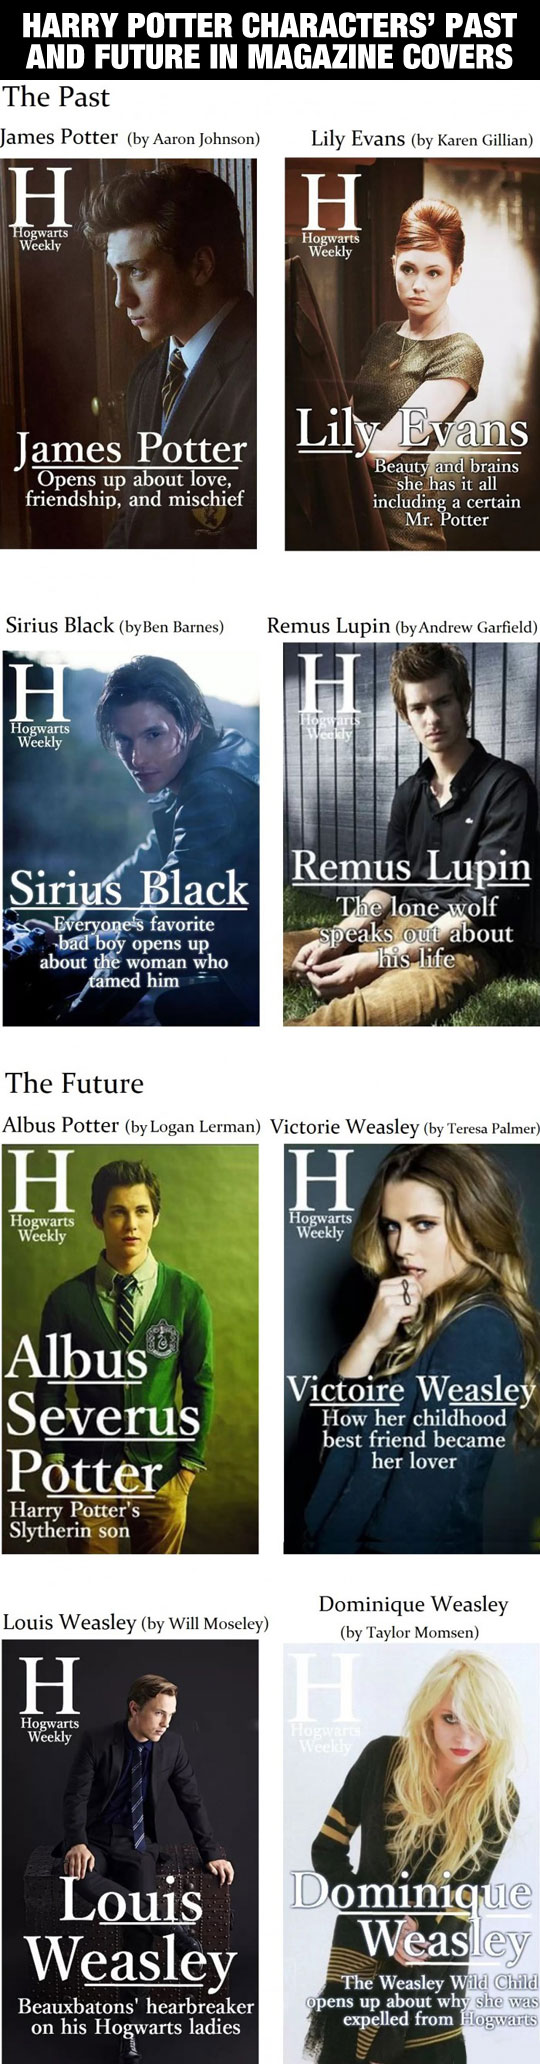 harry-potter-past-present-magazine-covers